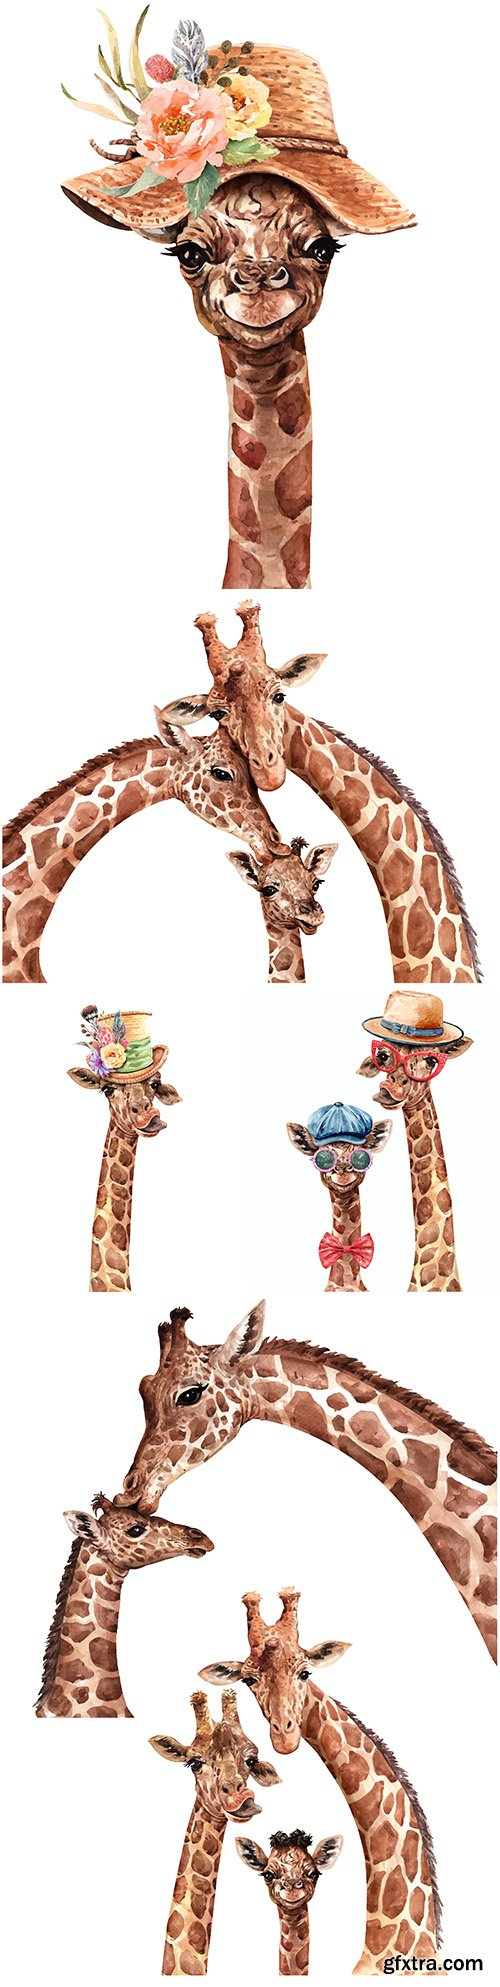 Giraffe in hat with flower and family watercolor illustration